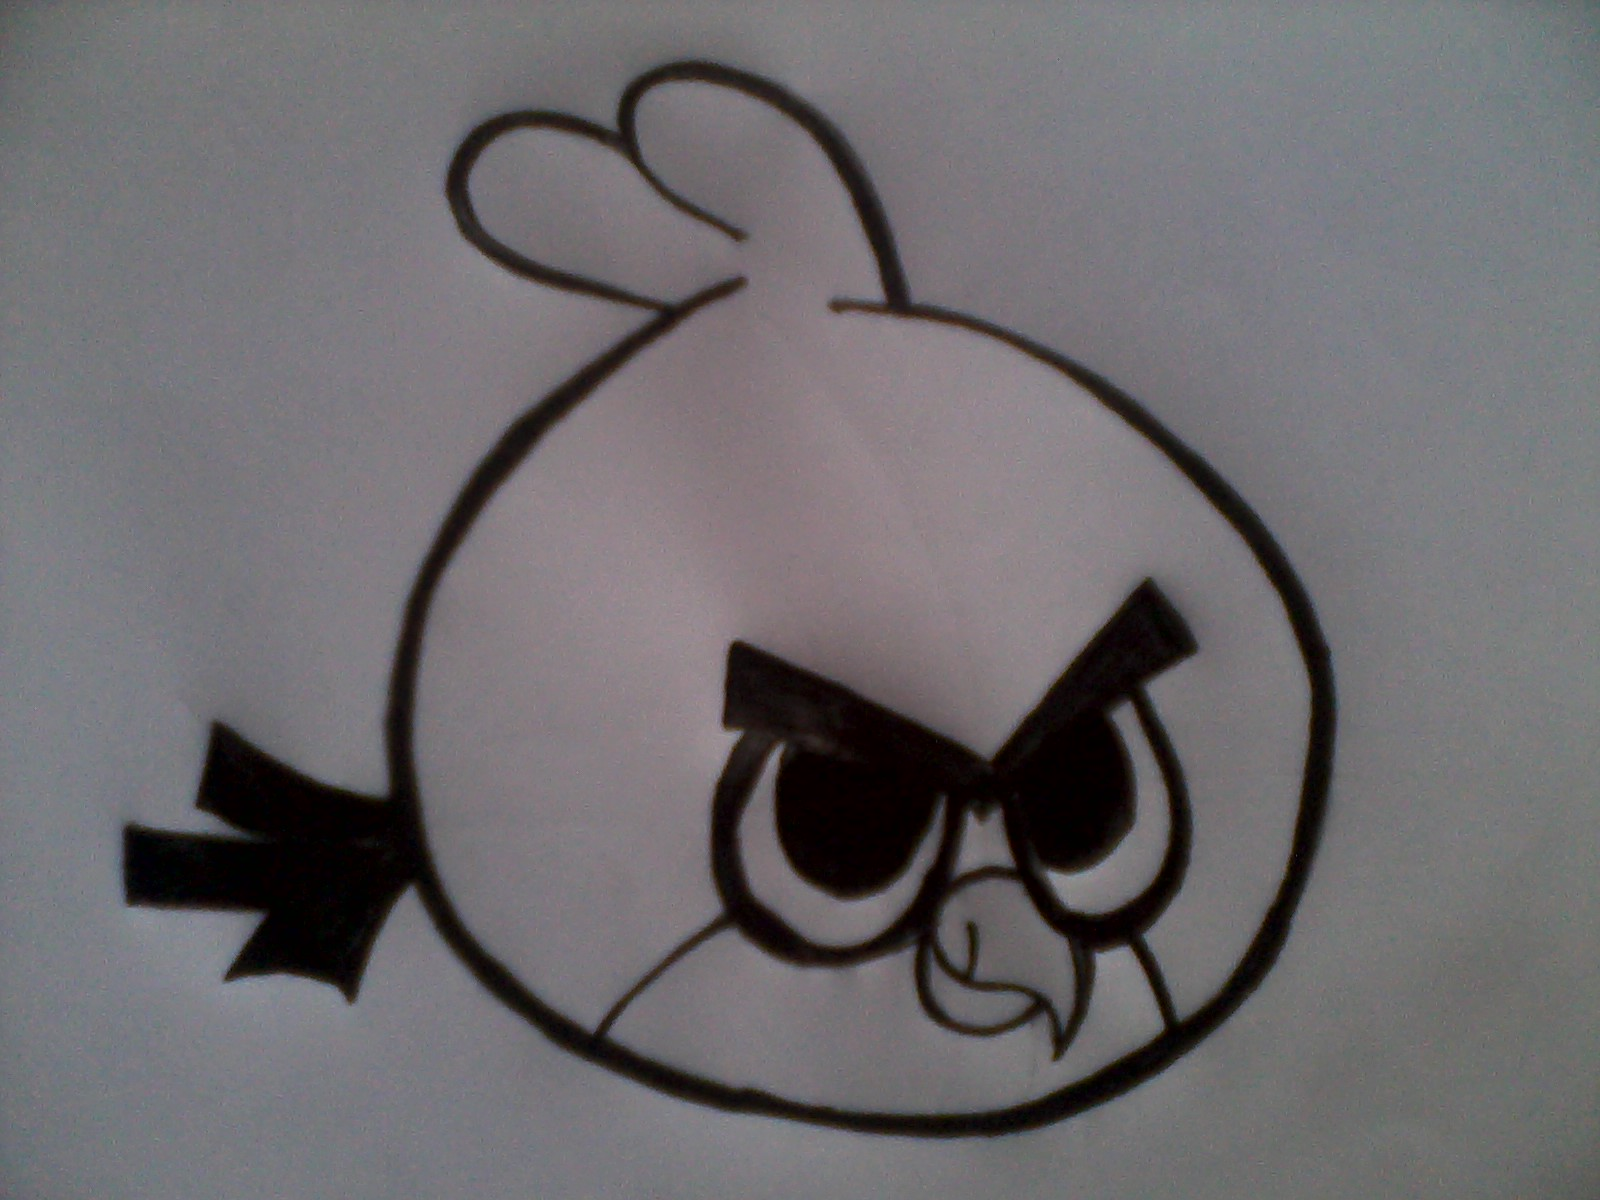 Here are the simple and very easy steps to draw angry bird